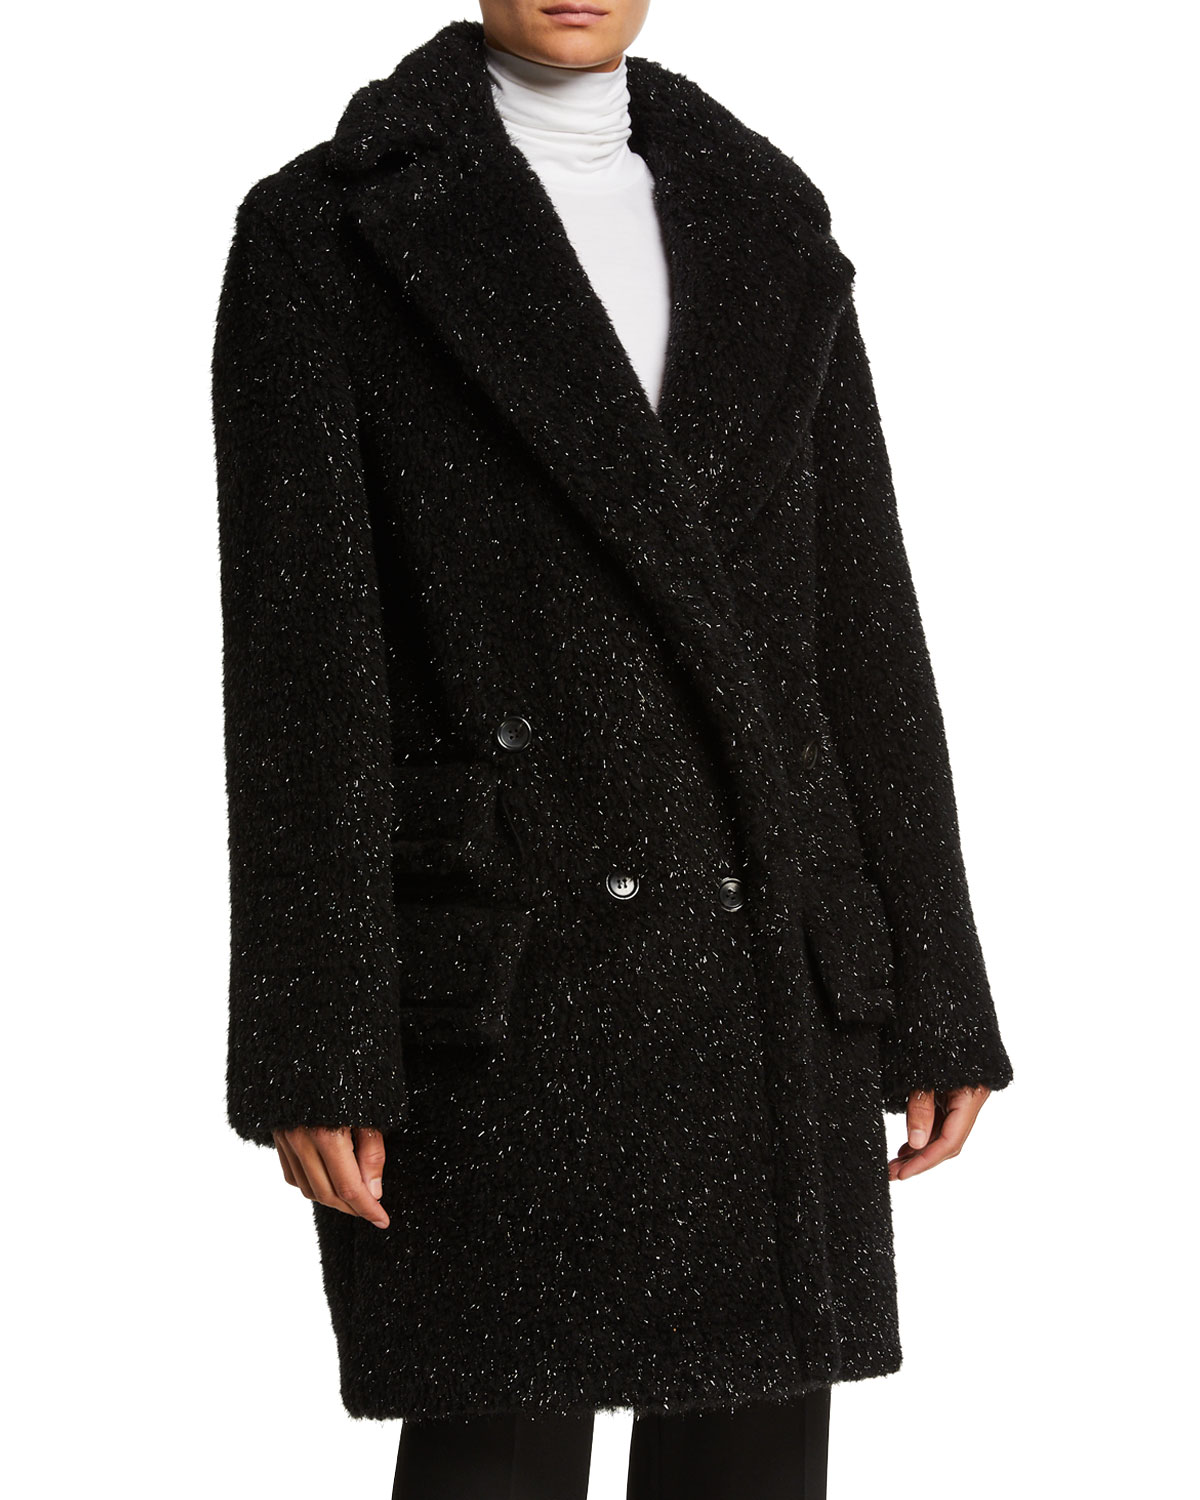 Max Mara Coats METALLIC SPECKED TEDDY COAT